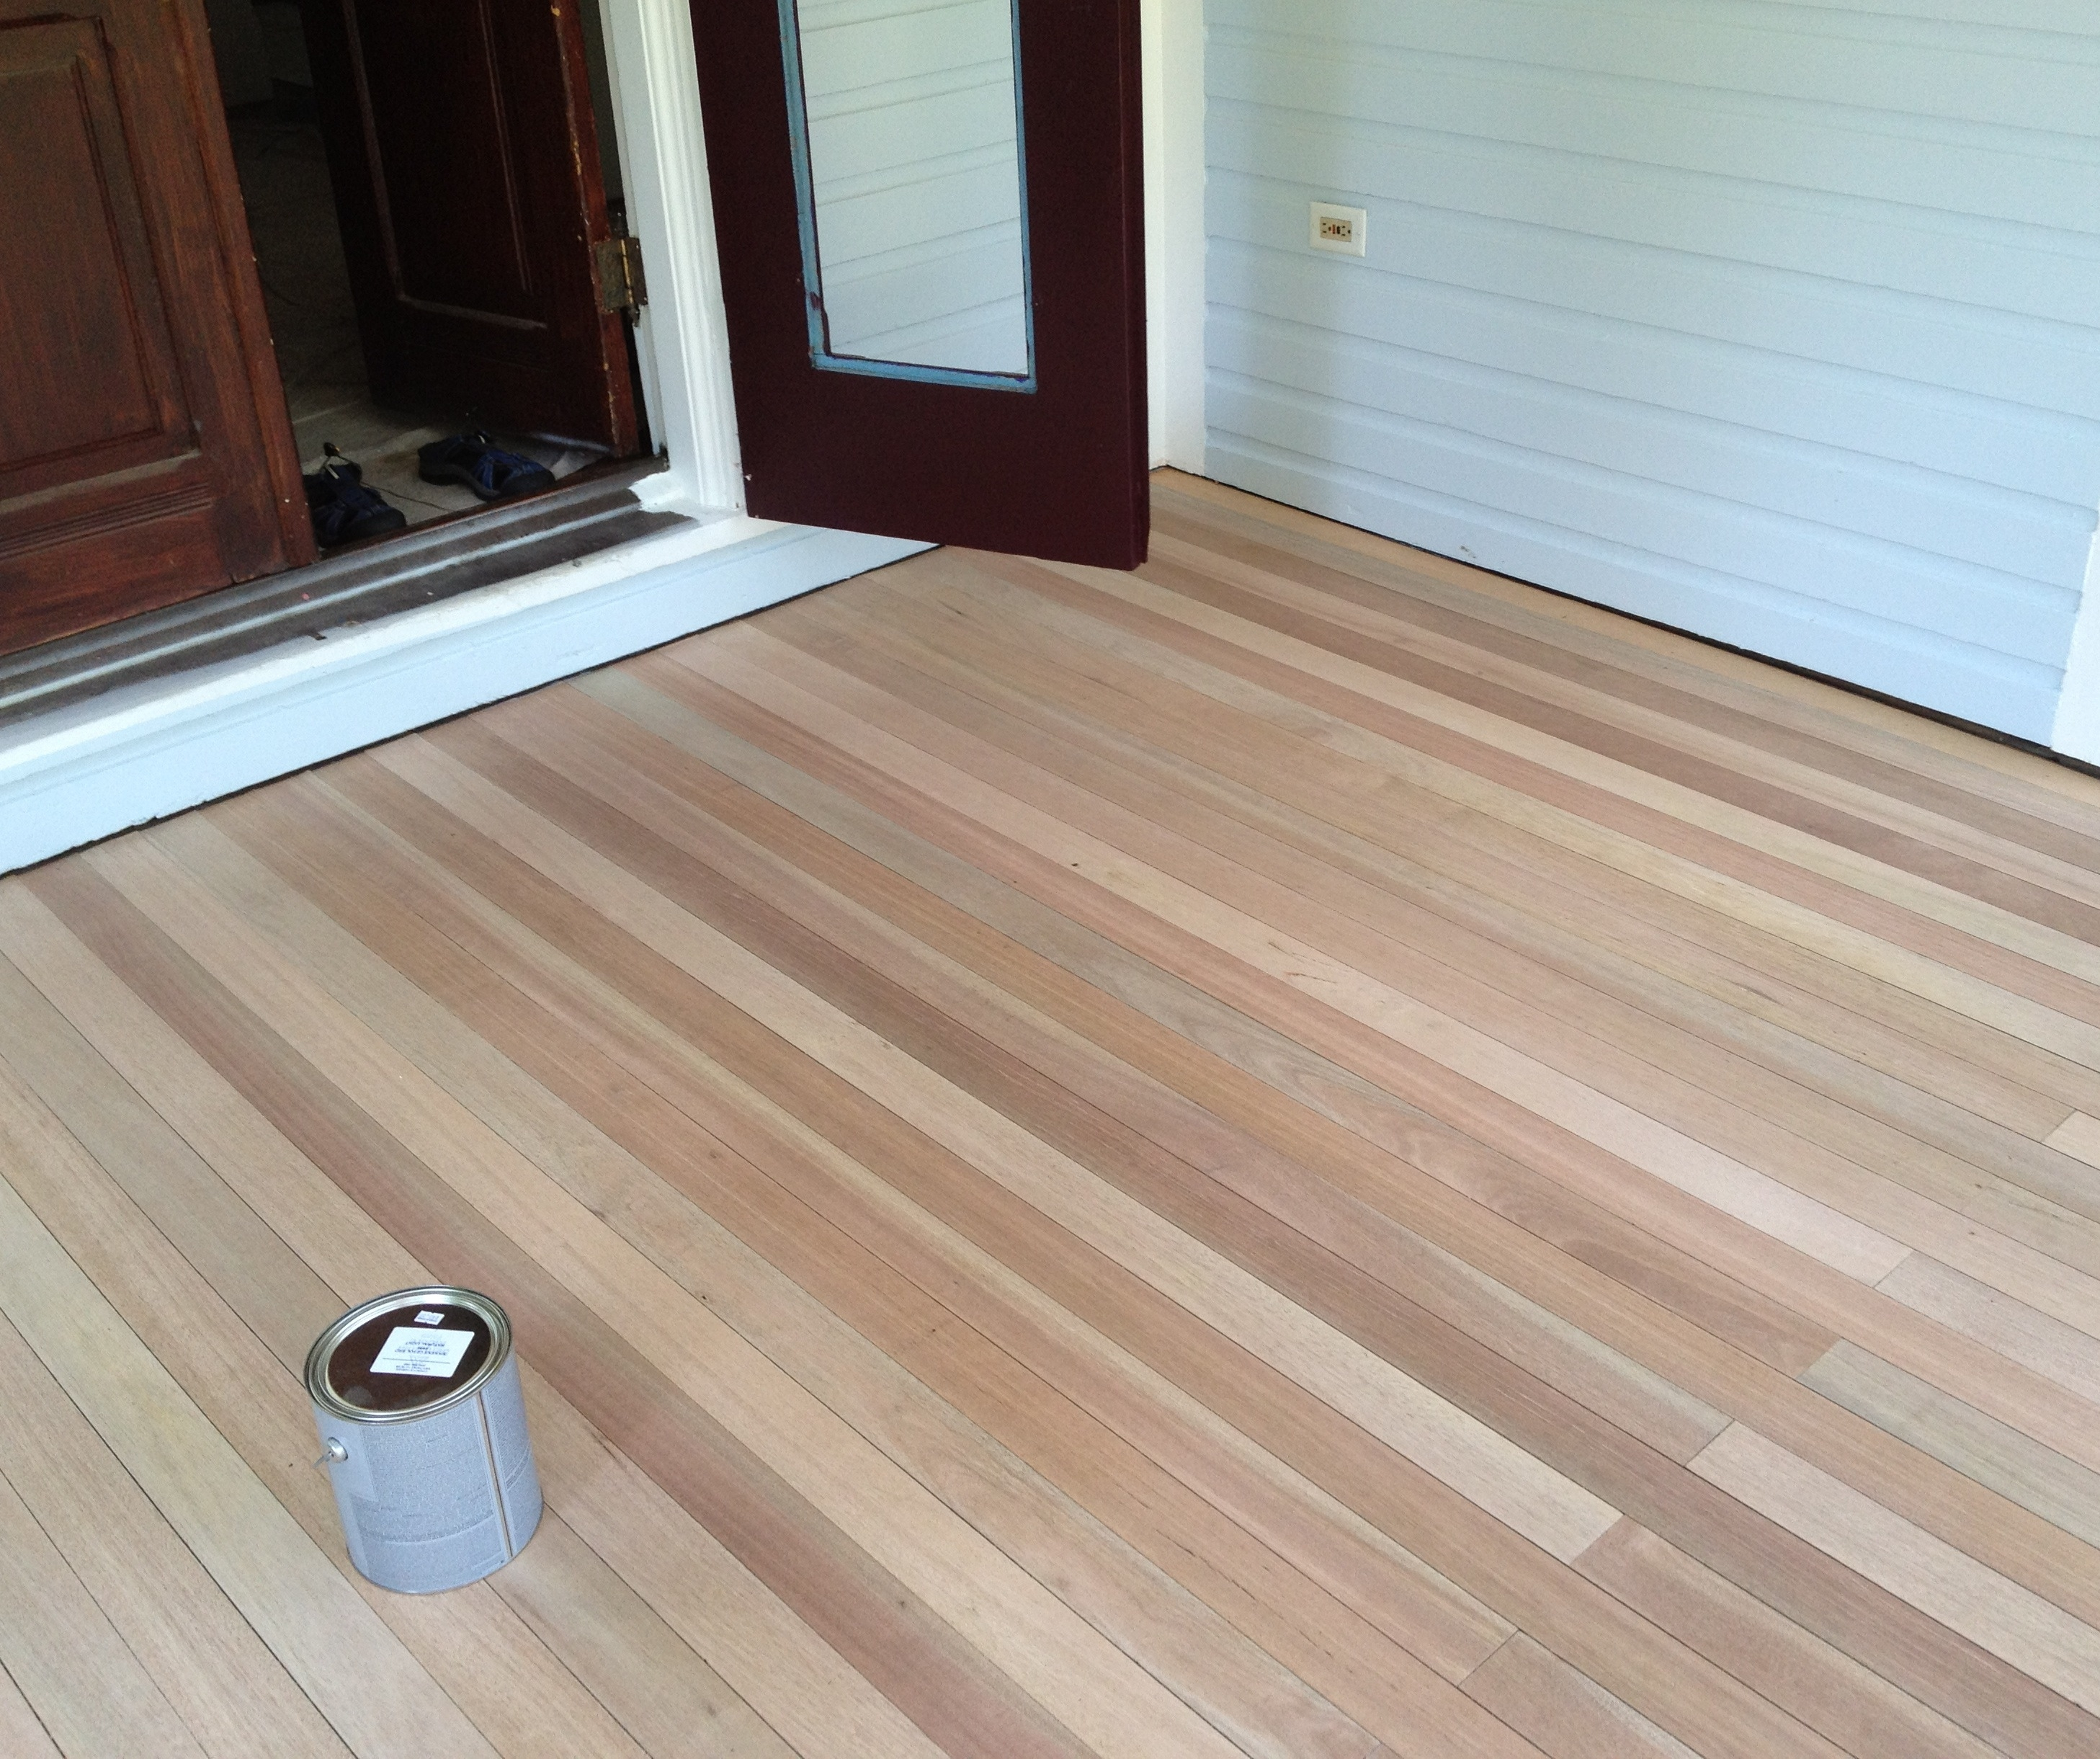 Permalink to Staining Light Wood Floors Darker